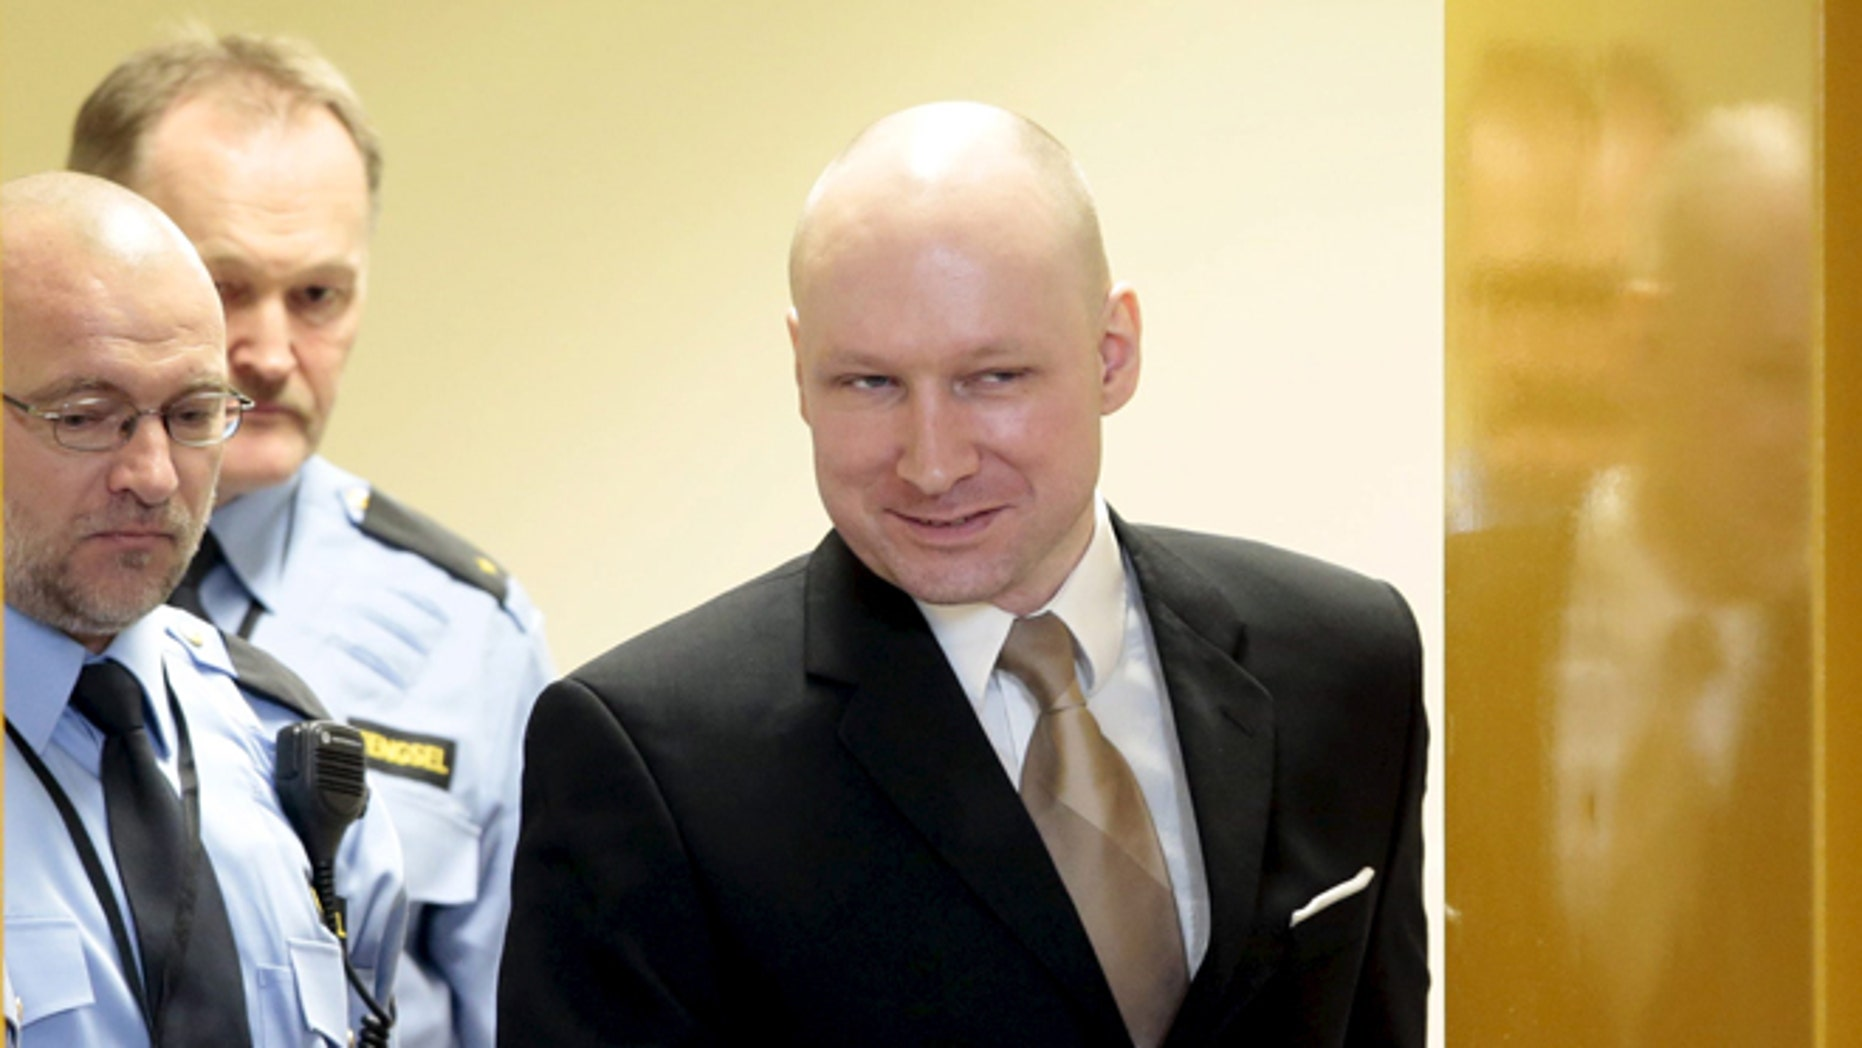 March 15, 2016: Mass killer Anders Behring Breivik is escorted by prison guards as he enters the court room in Skien prison. He recently filed a claim that his human rights were violated by being in solitary confinement. (Reuters)